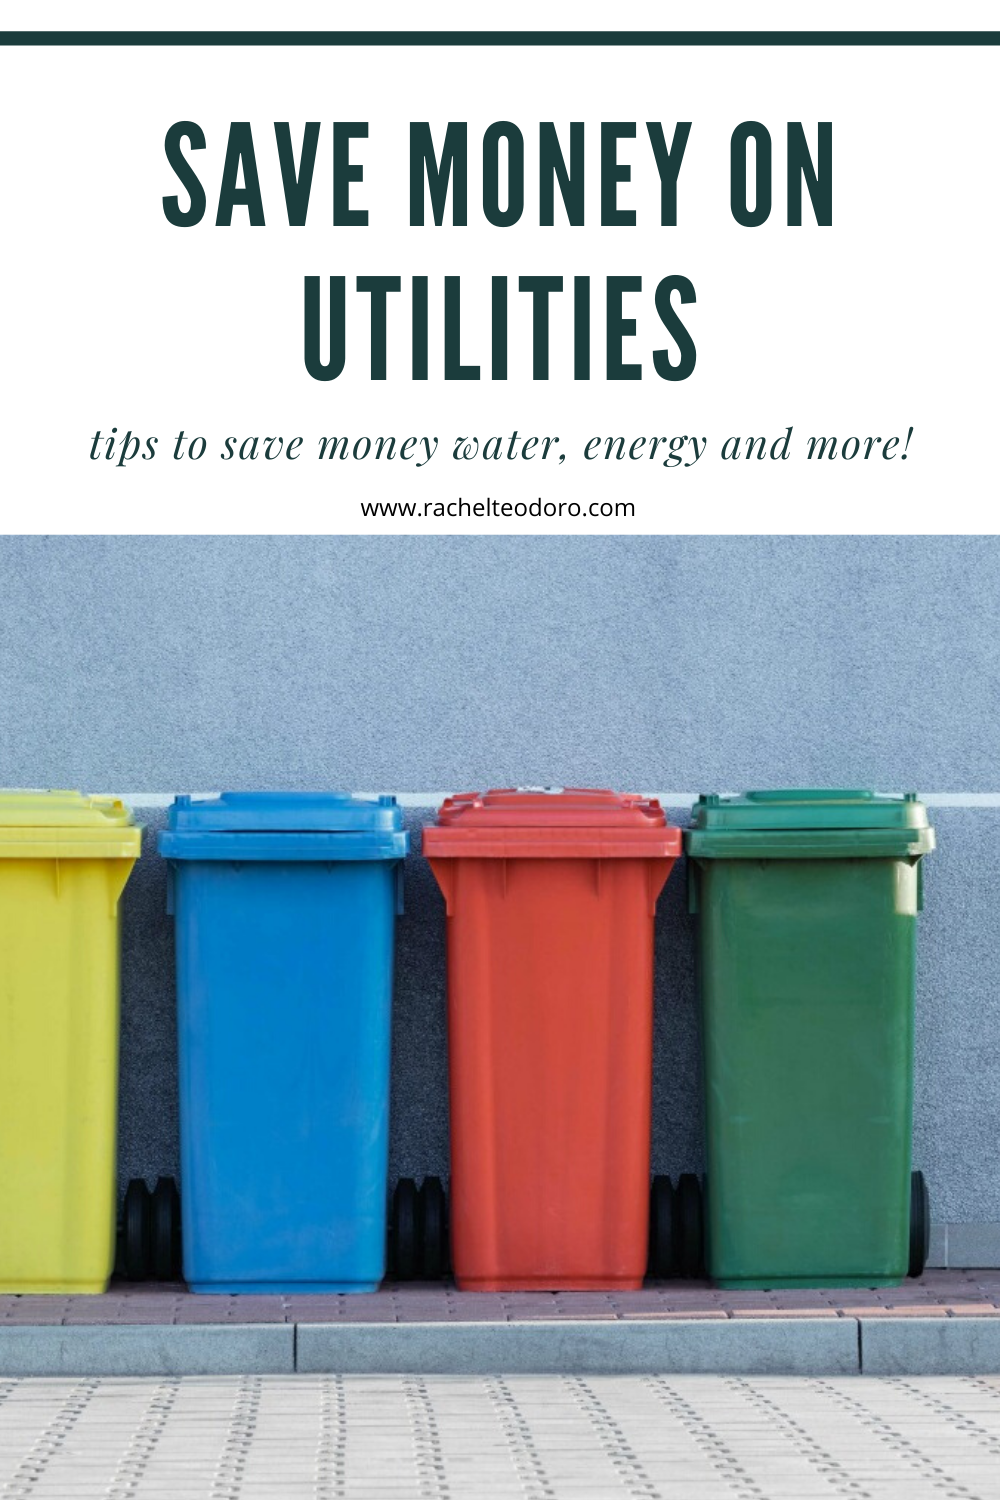 saving money on utilities